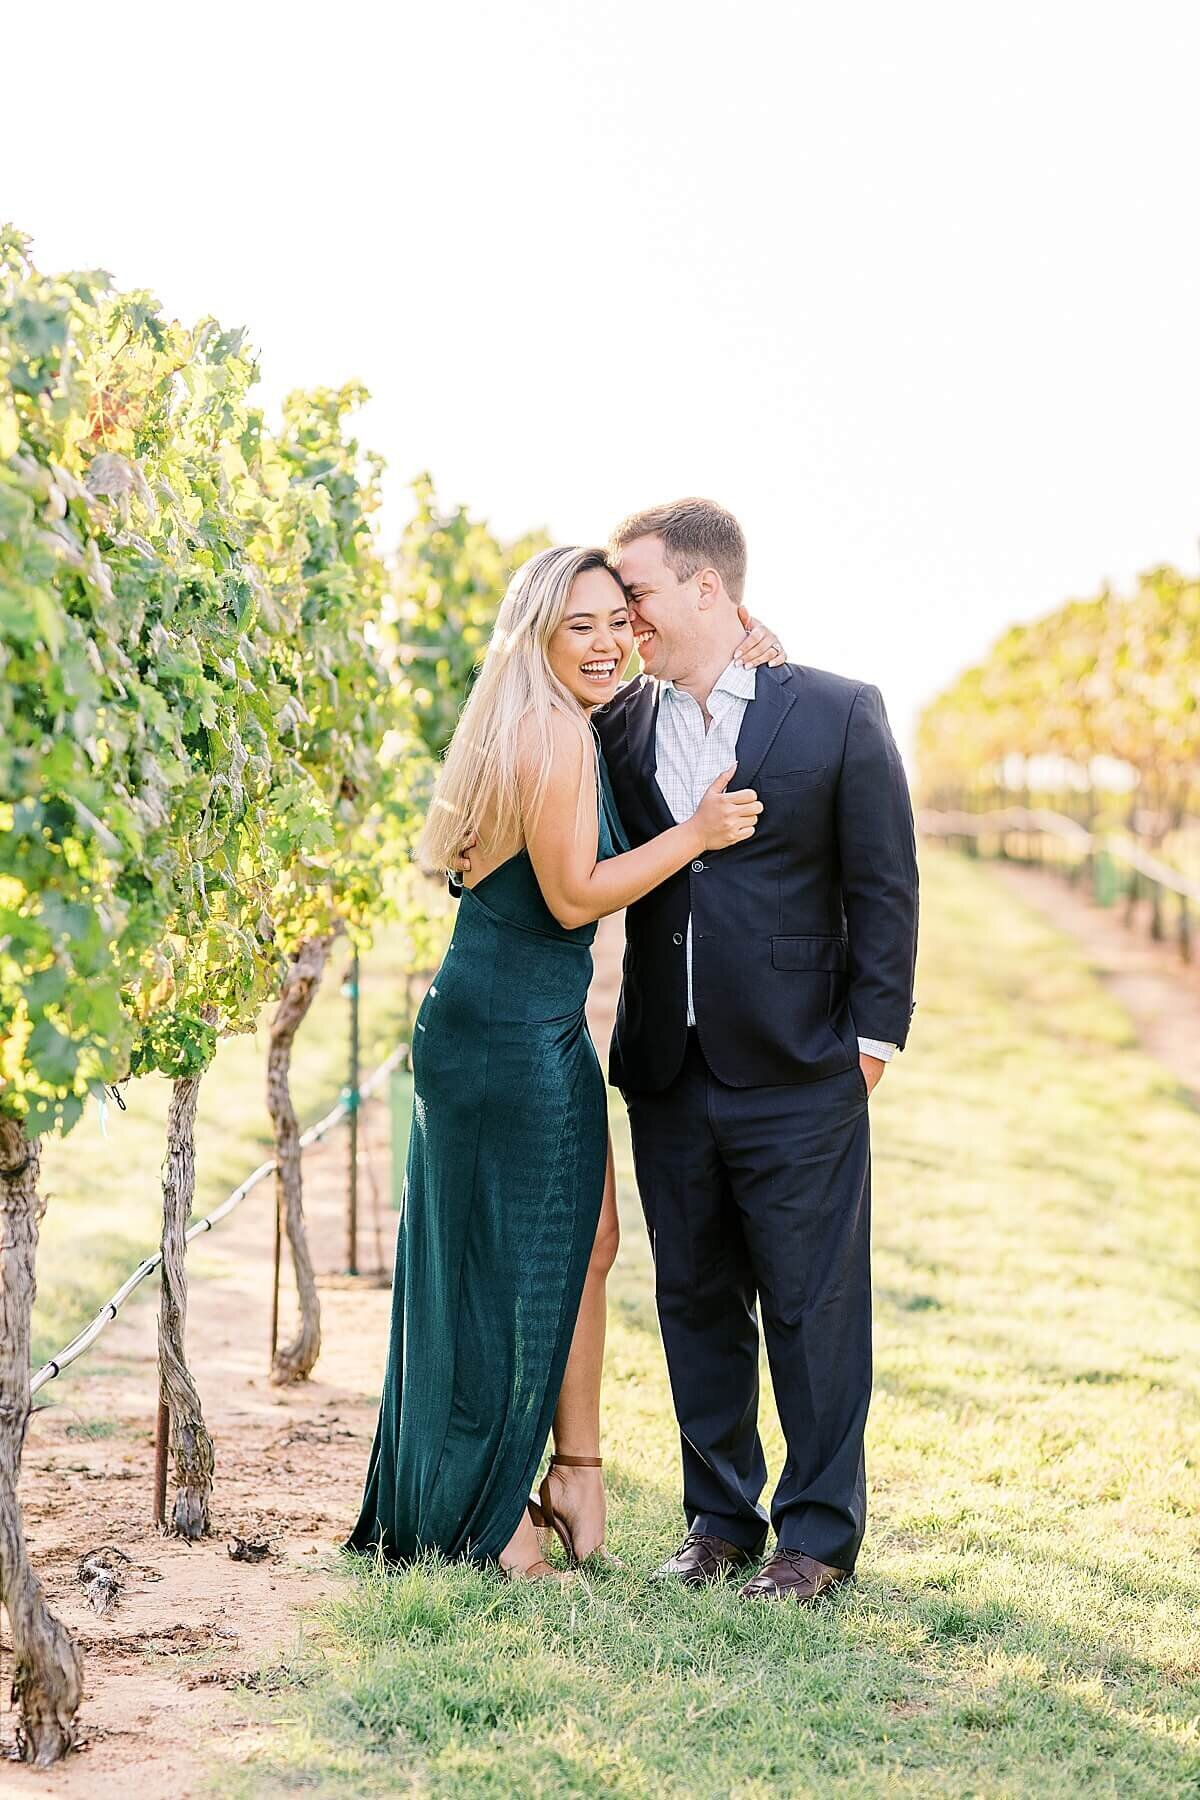 Texas-Hill-Country-Vineyard-Engagement-Portrait-Session-Alicia-Yarrish-Photography_0004